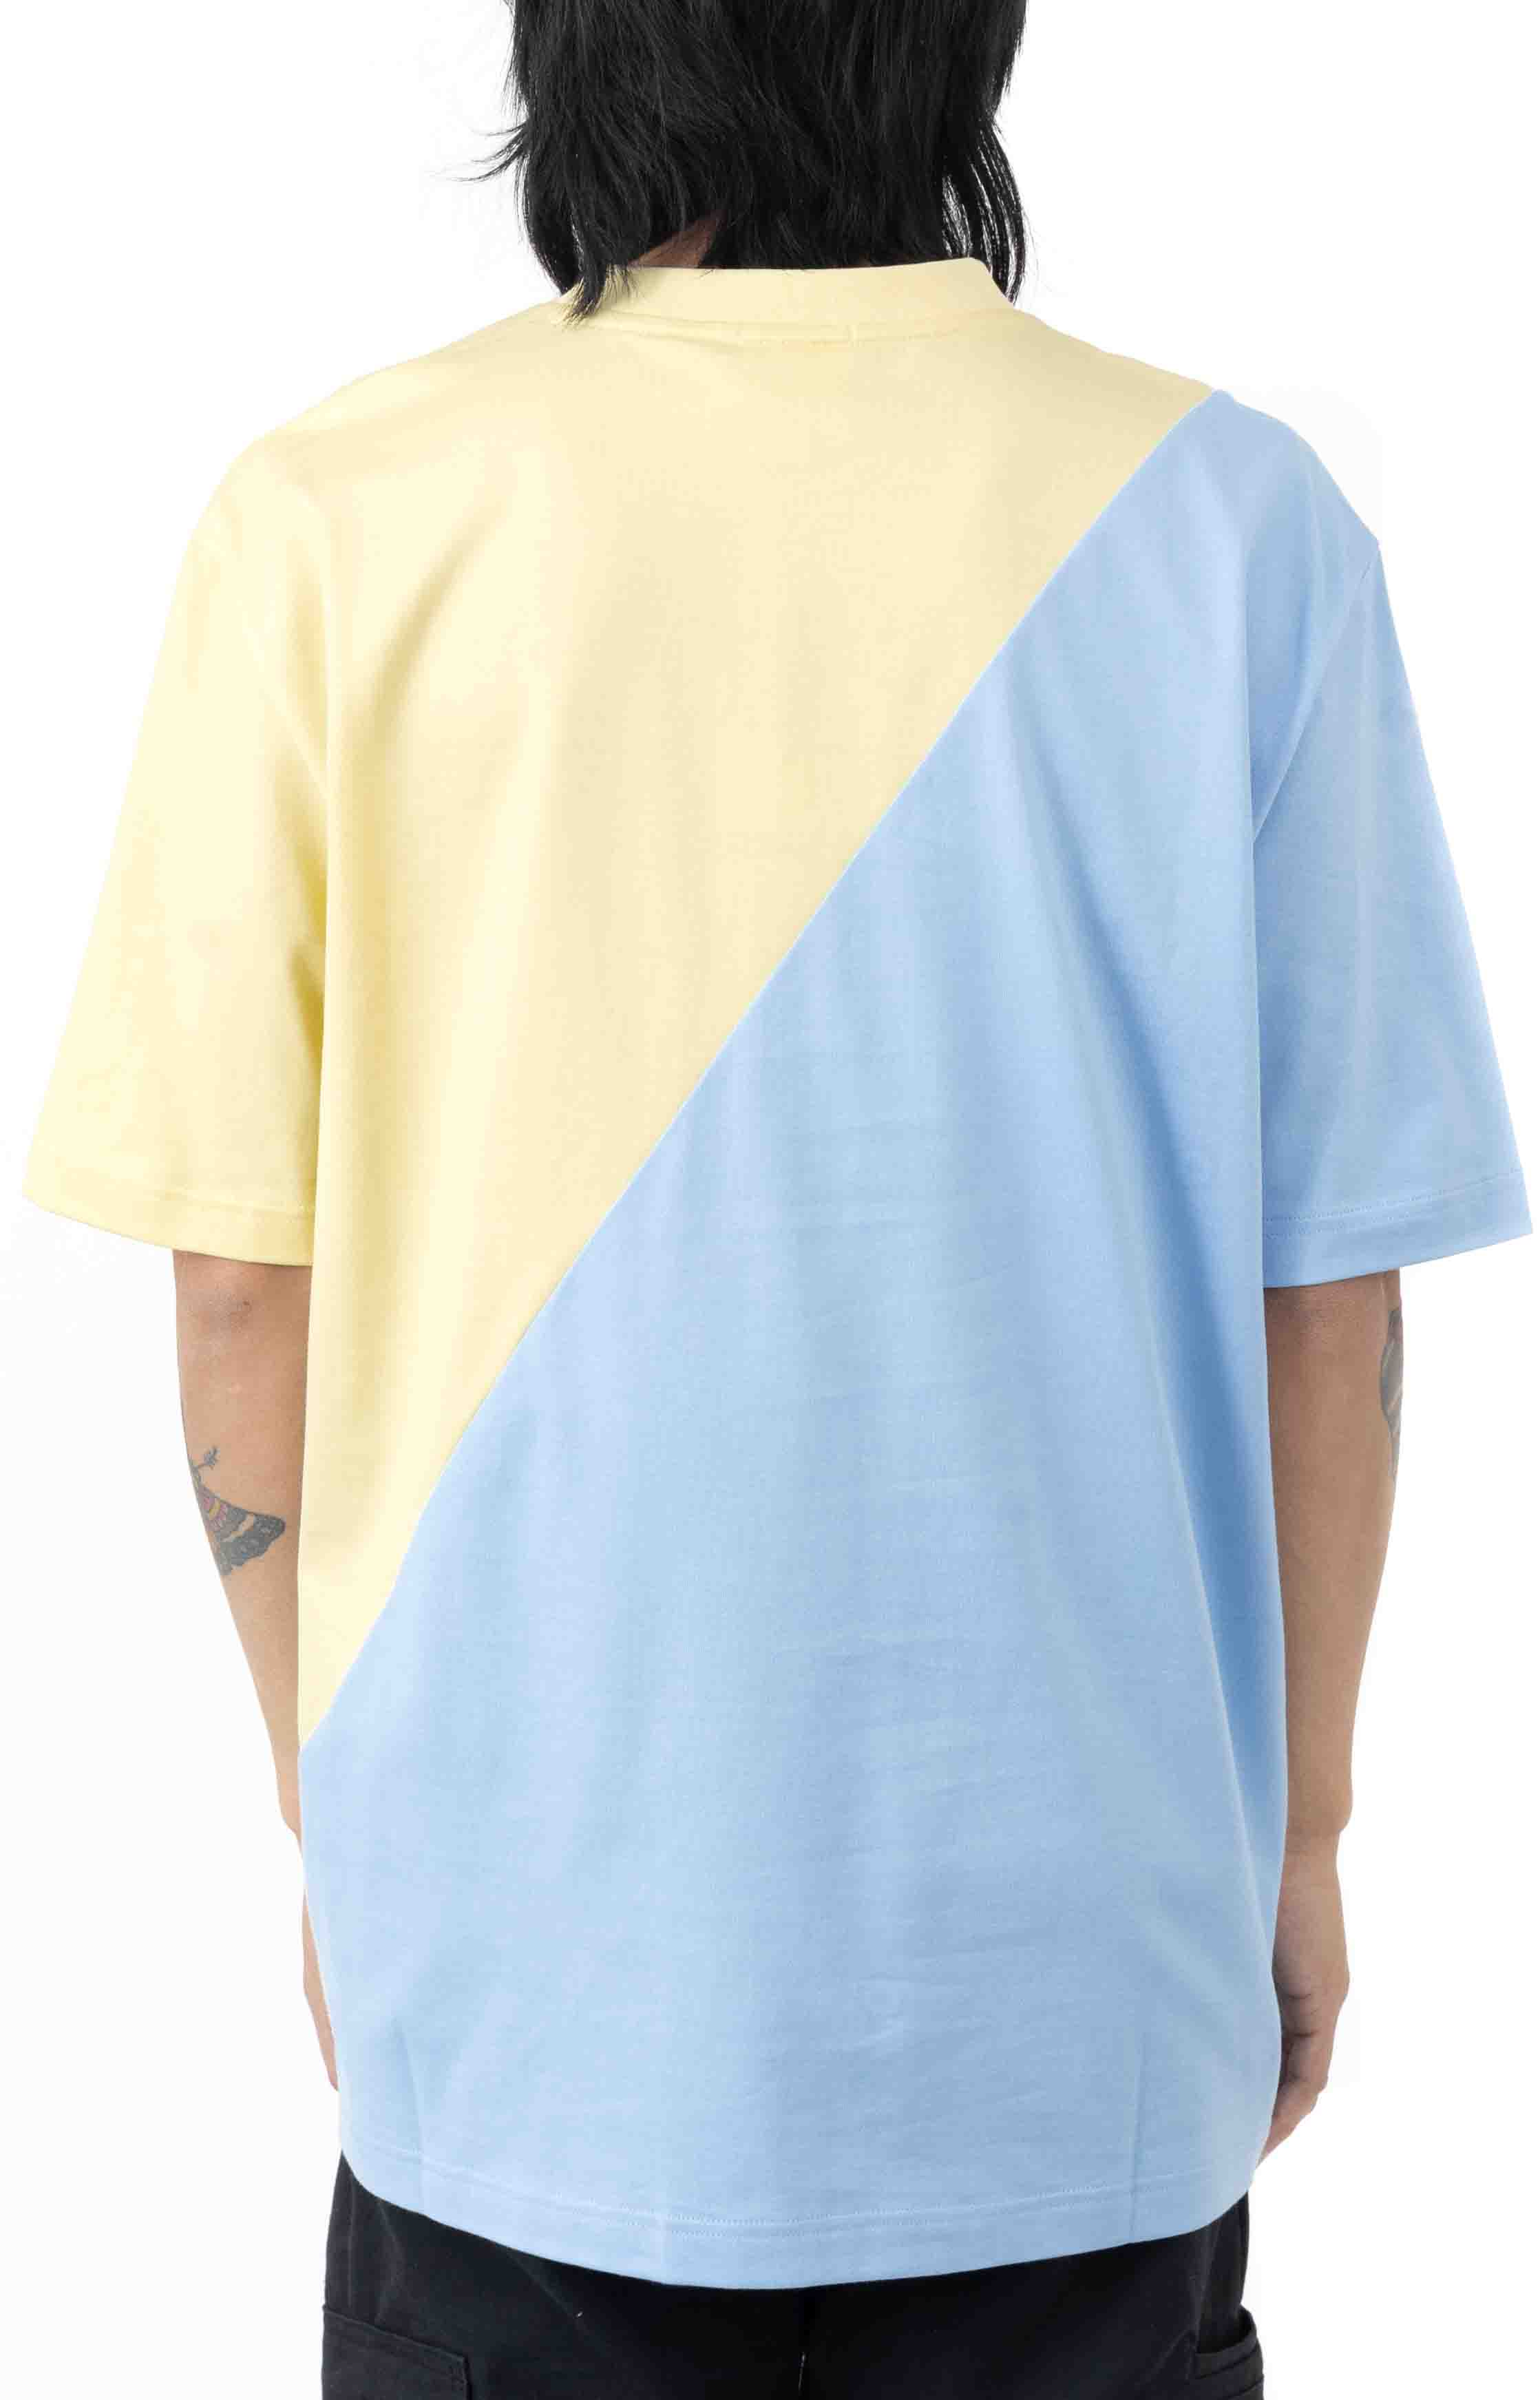 LIVE Loose Fit Colorblock T-Shirt - Yellow/Blue 3